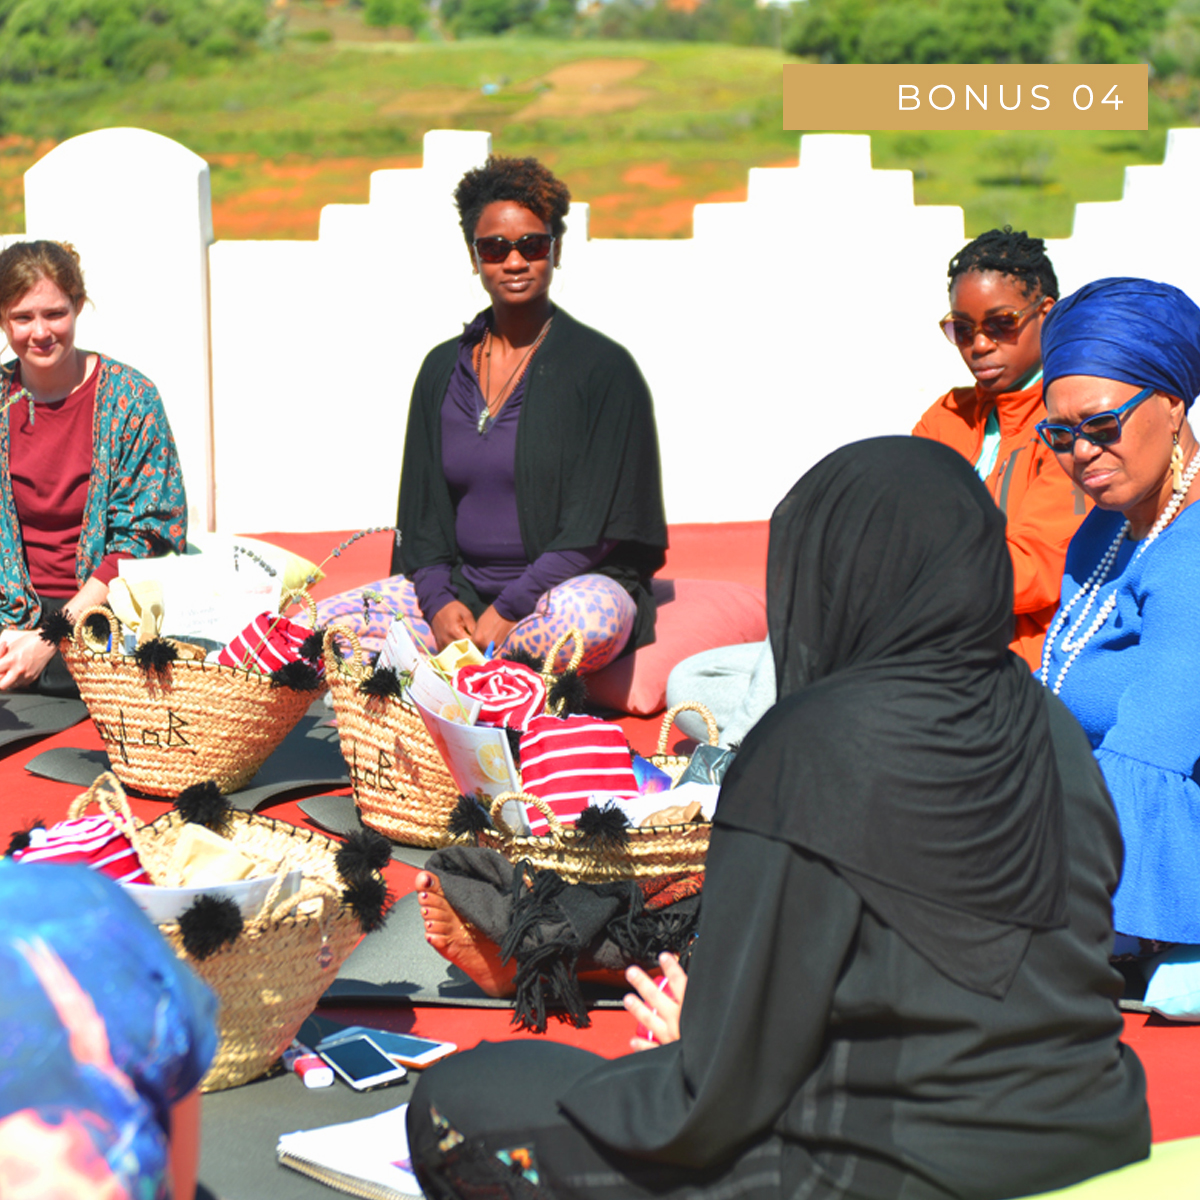 Sisters Circle Discussion - A beautiful pre-recorded video of a discussion between international birth-workers and traditional qablas at our retreat in Morocco. Our students love this video.(Value £197)